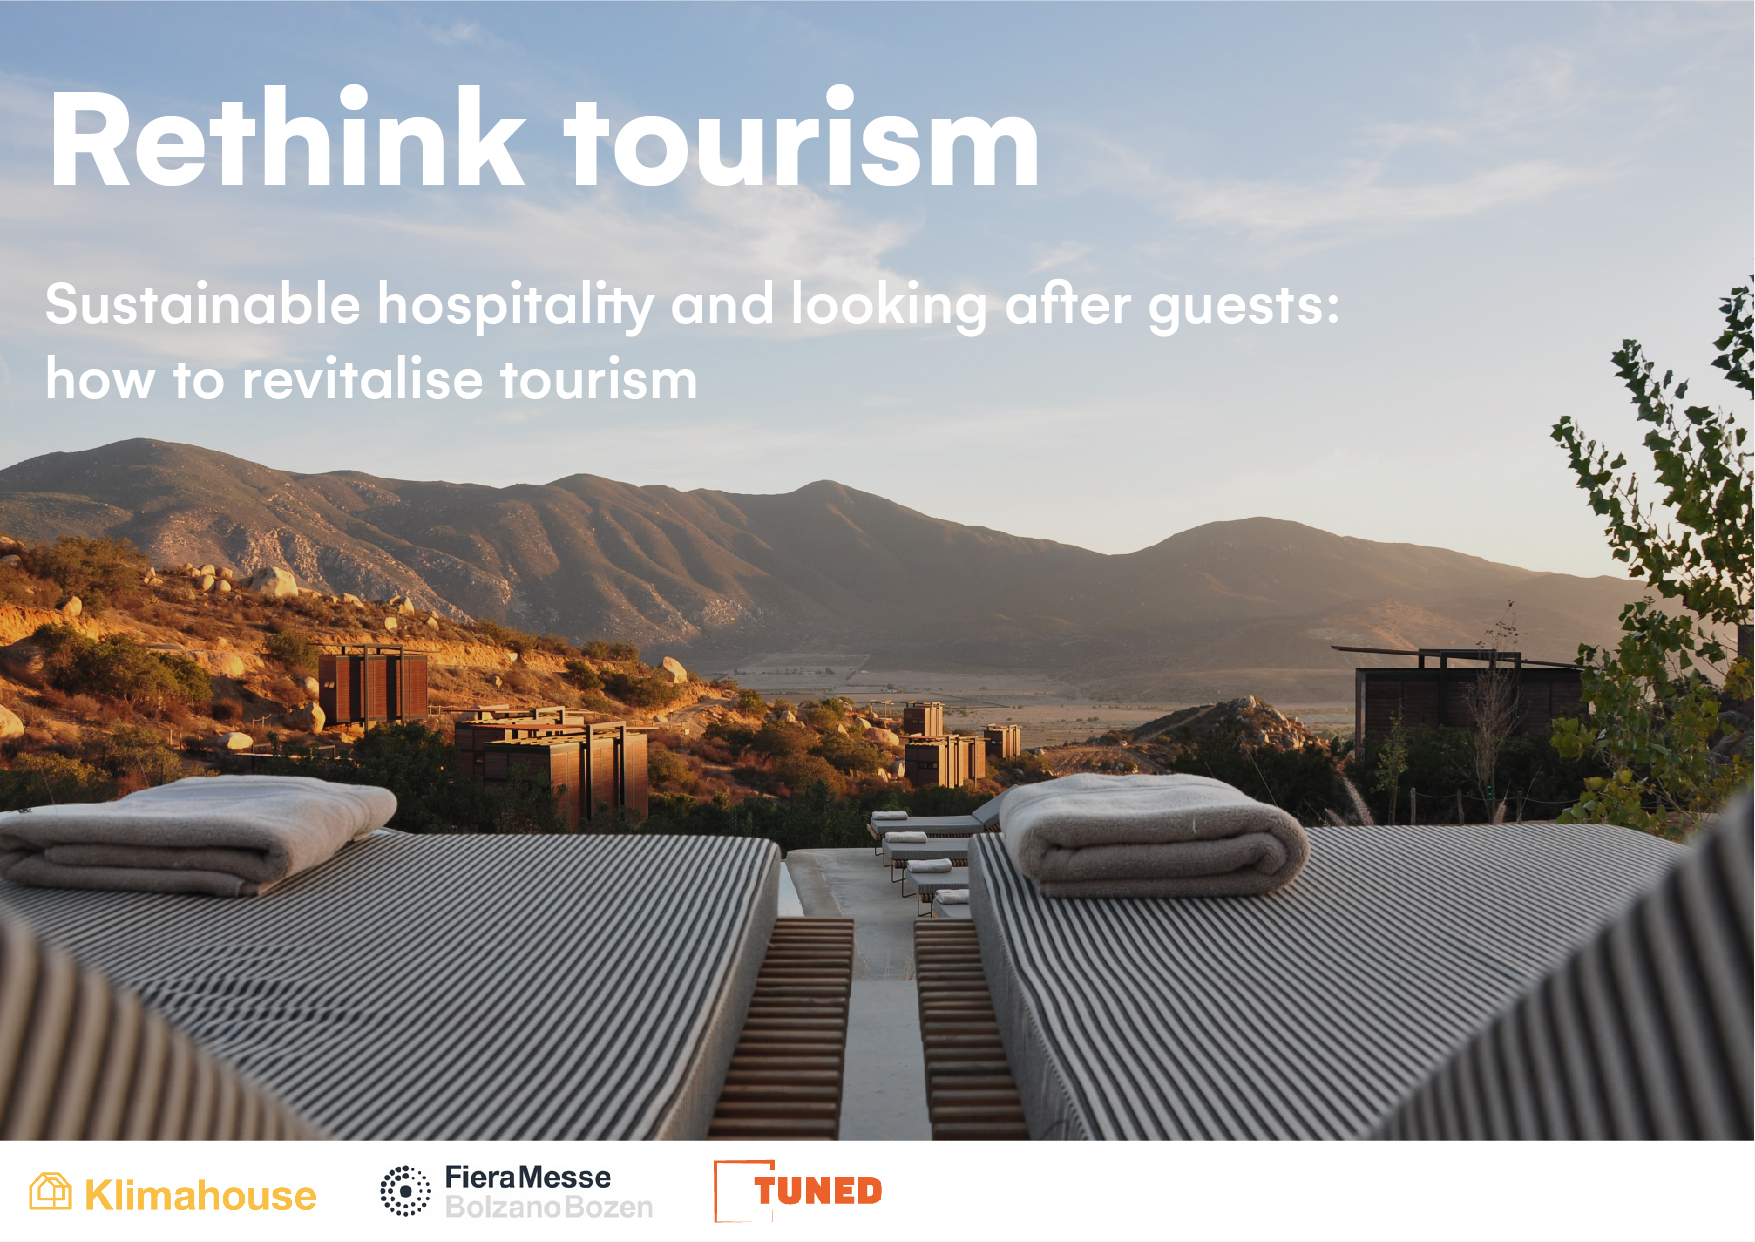 Sustainable hospitality and looking after guests: how to revitalise tourism - TUNED KlimaHouse Cover ENG 201110